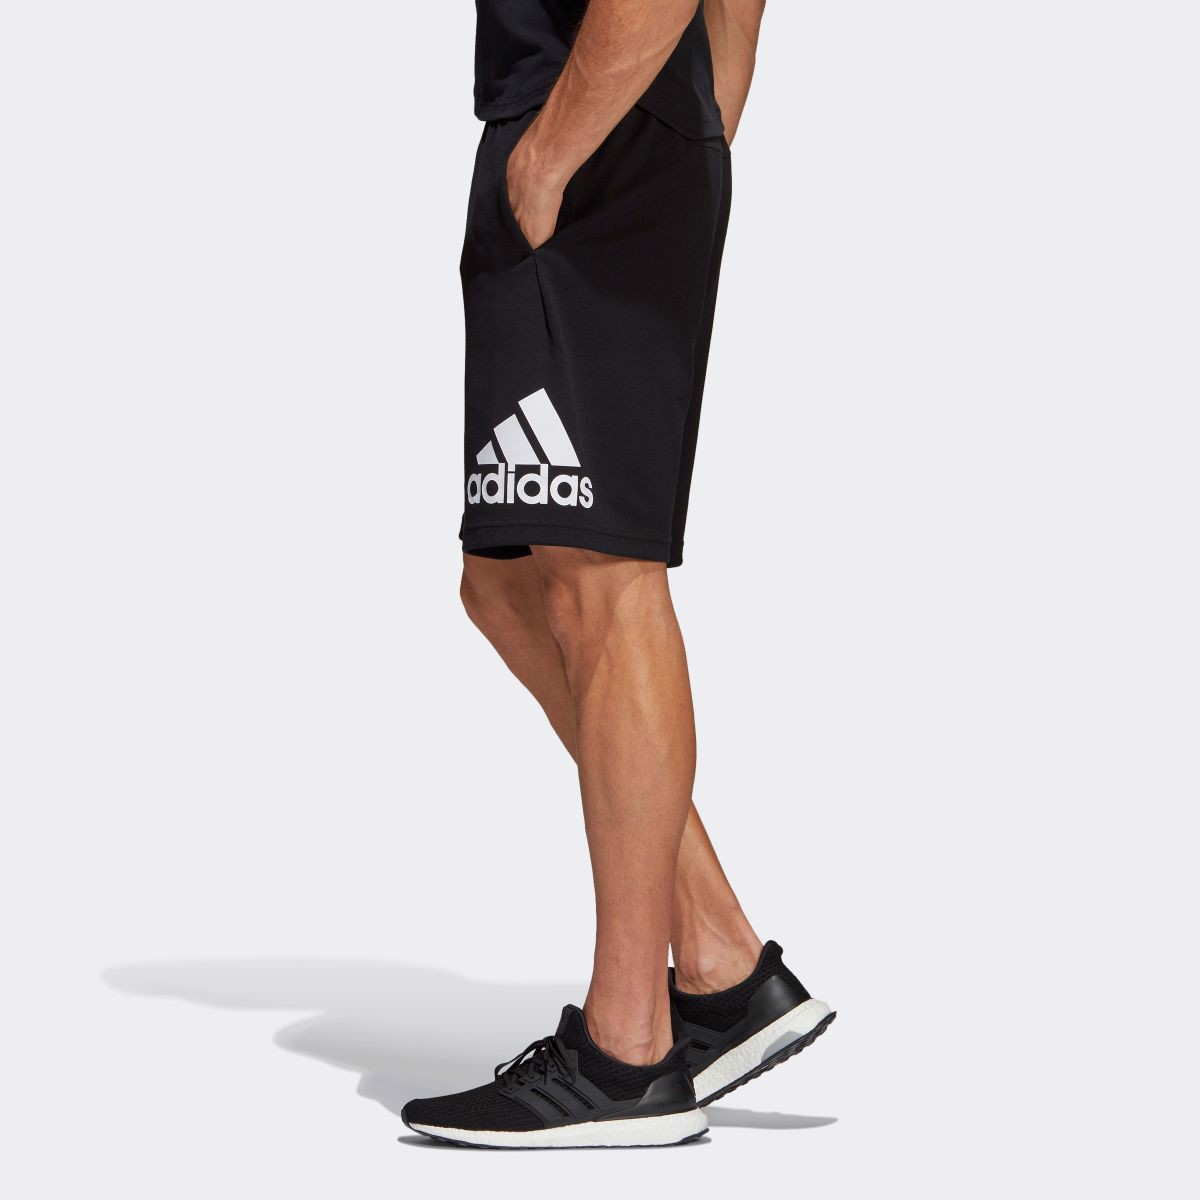 QUẦN ADIDAS MUST HAVE BADGE DT9949